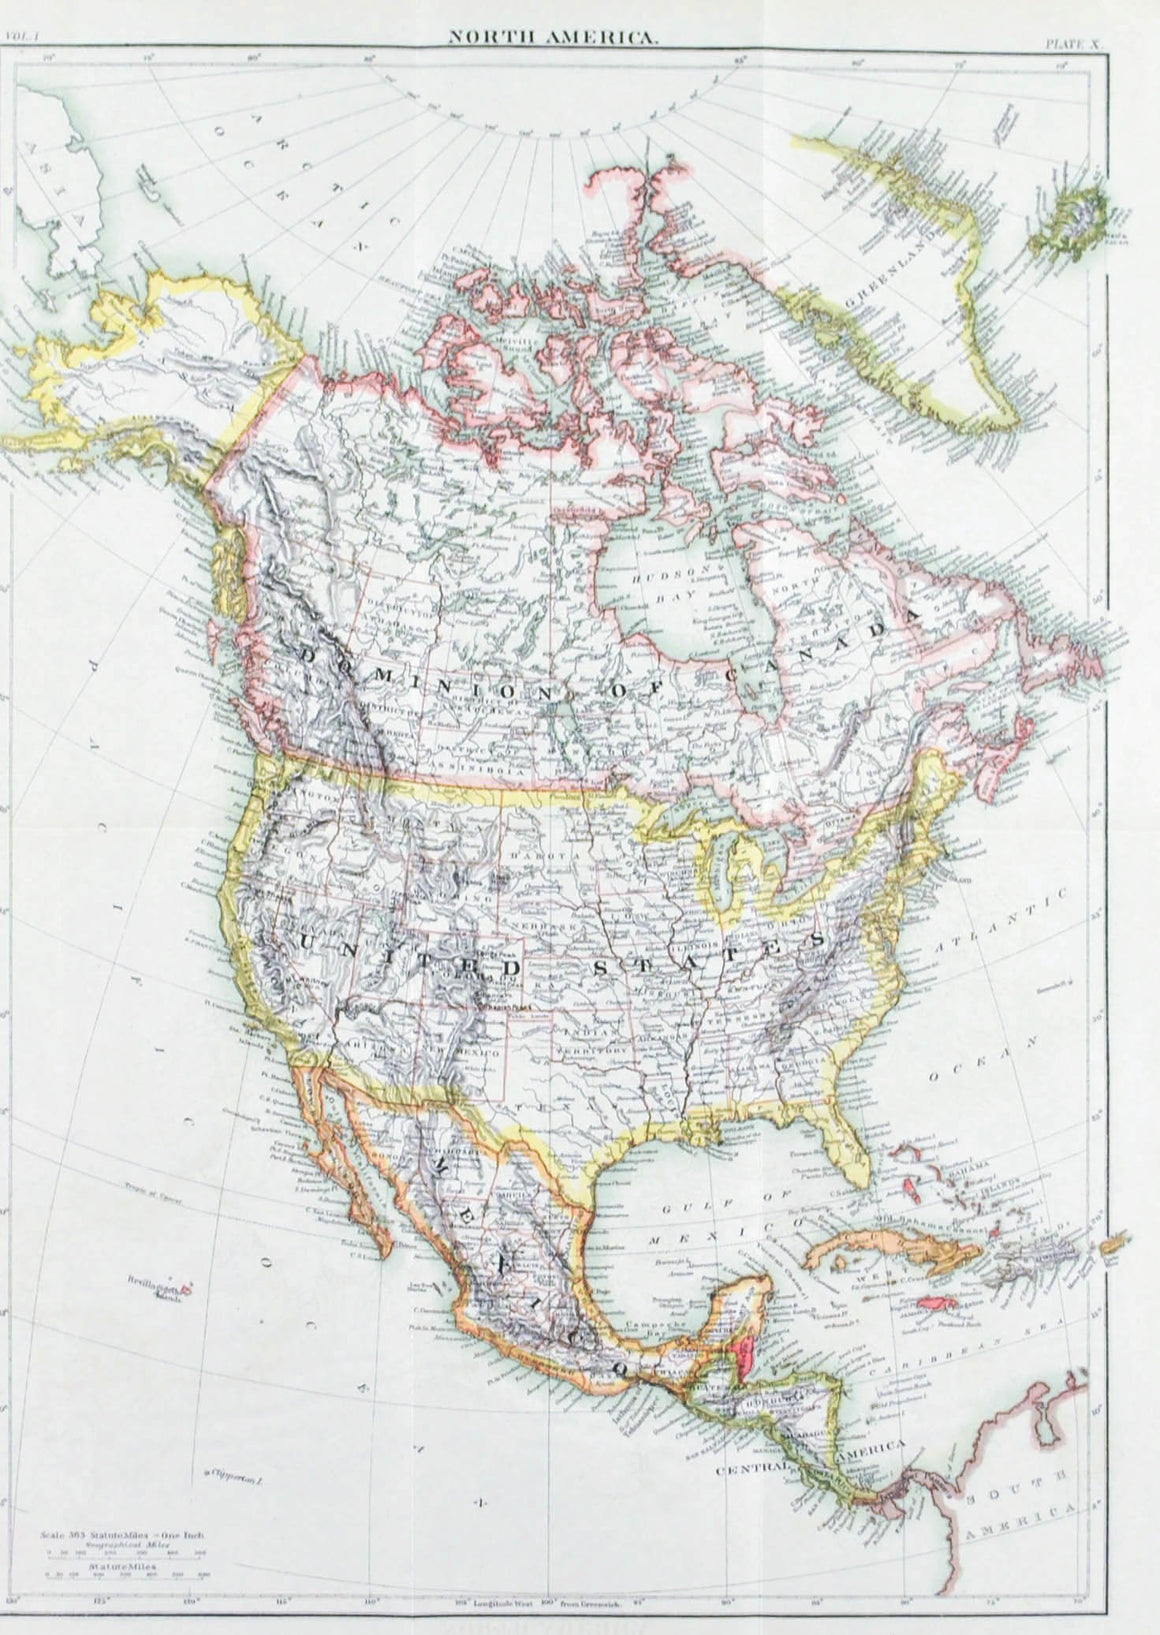 1875 North America - Britannica